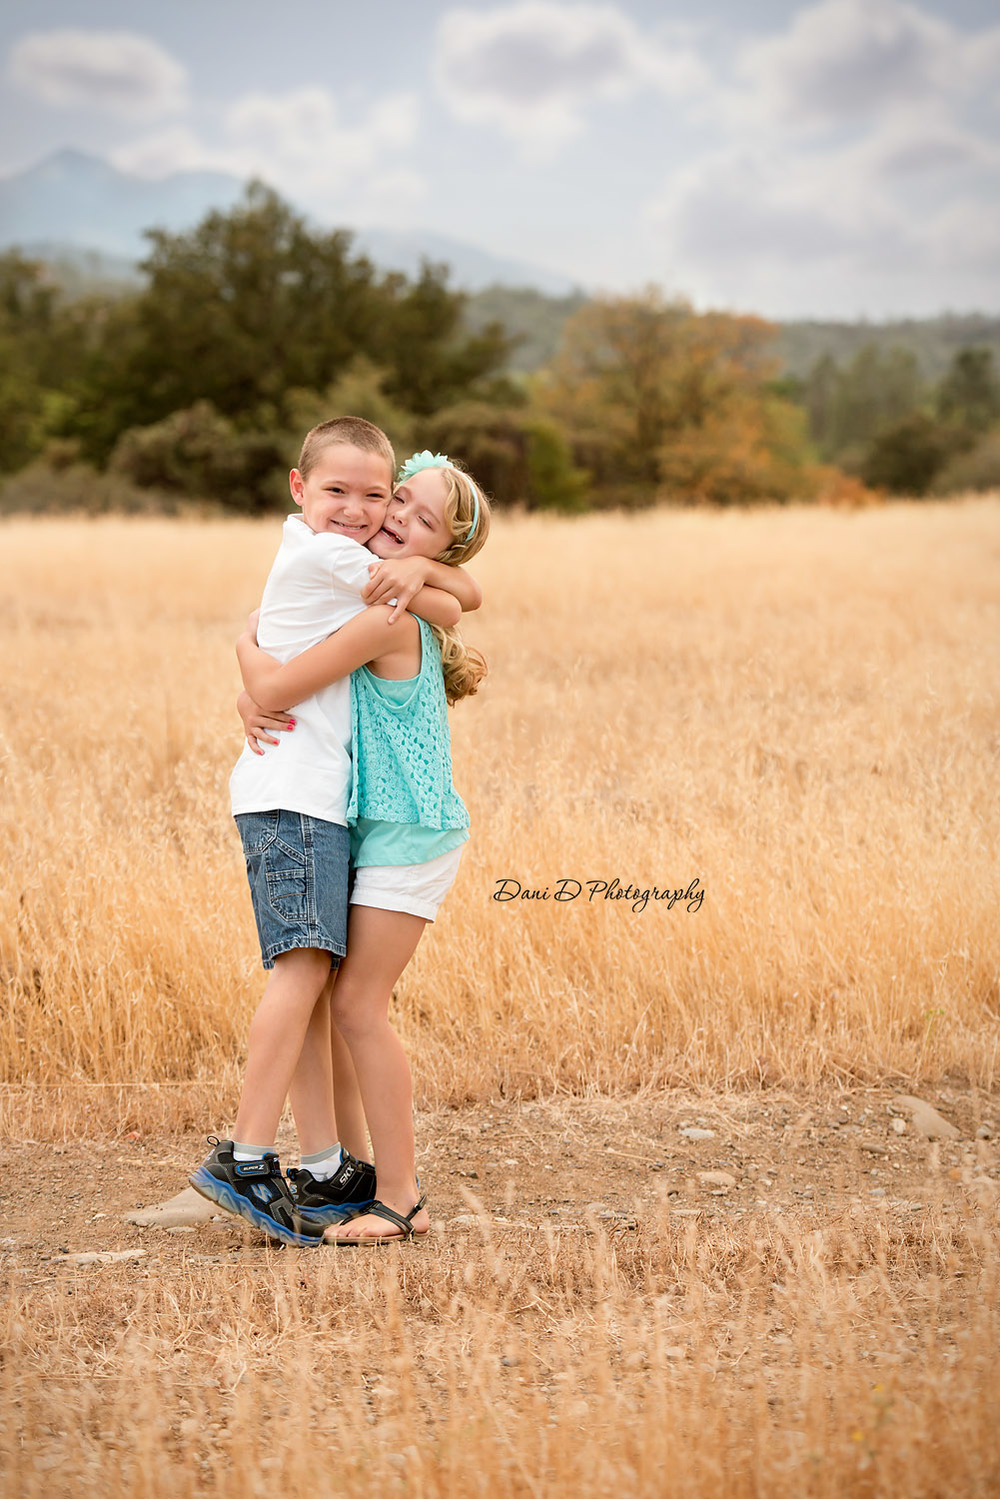 Outdoor twins portraits - Redding CA photographer - Dani D Photography